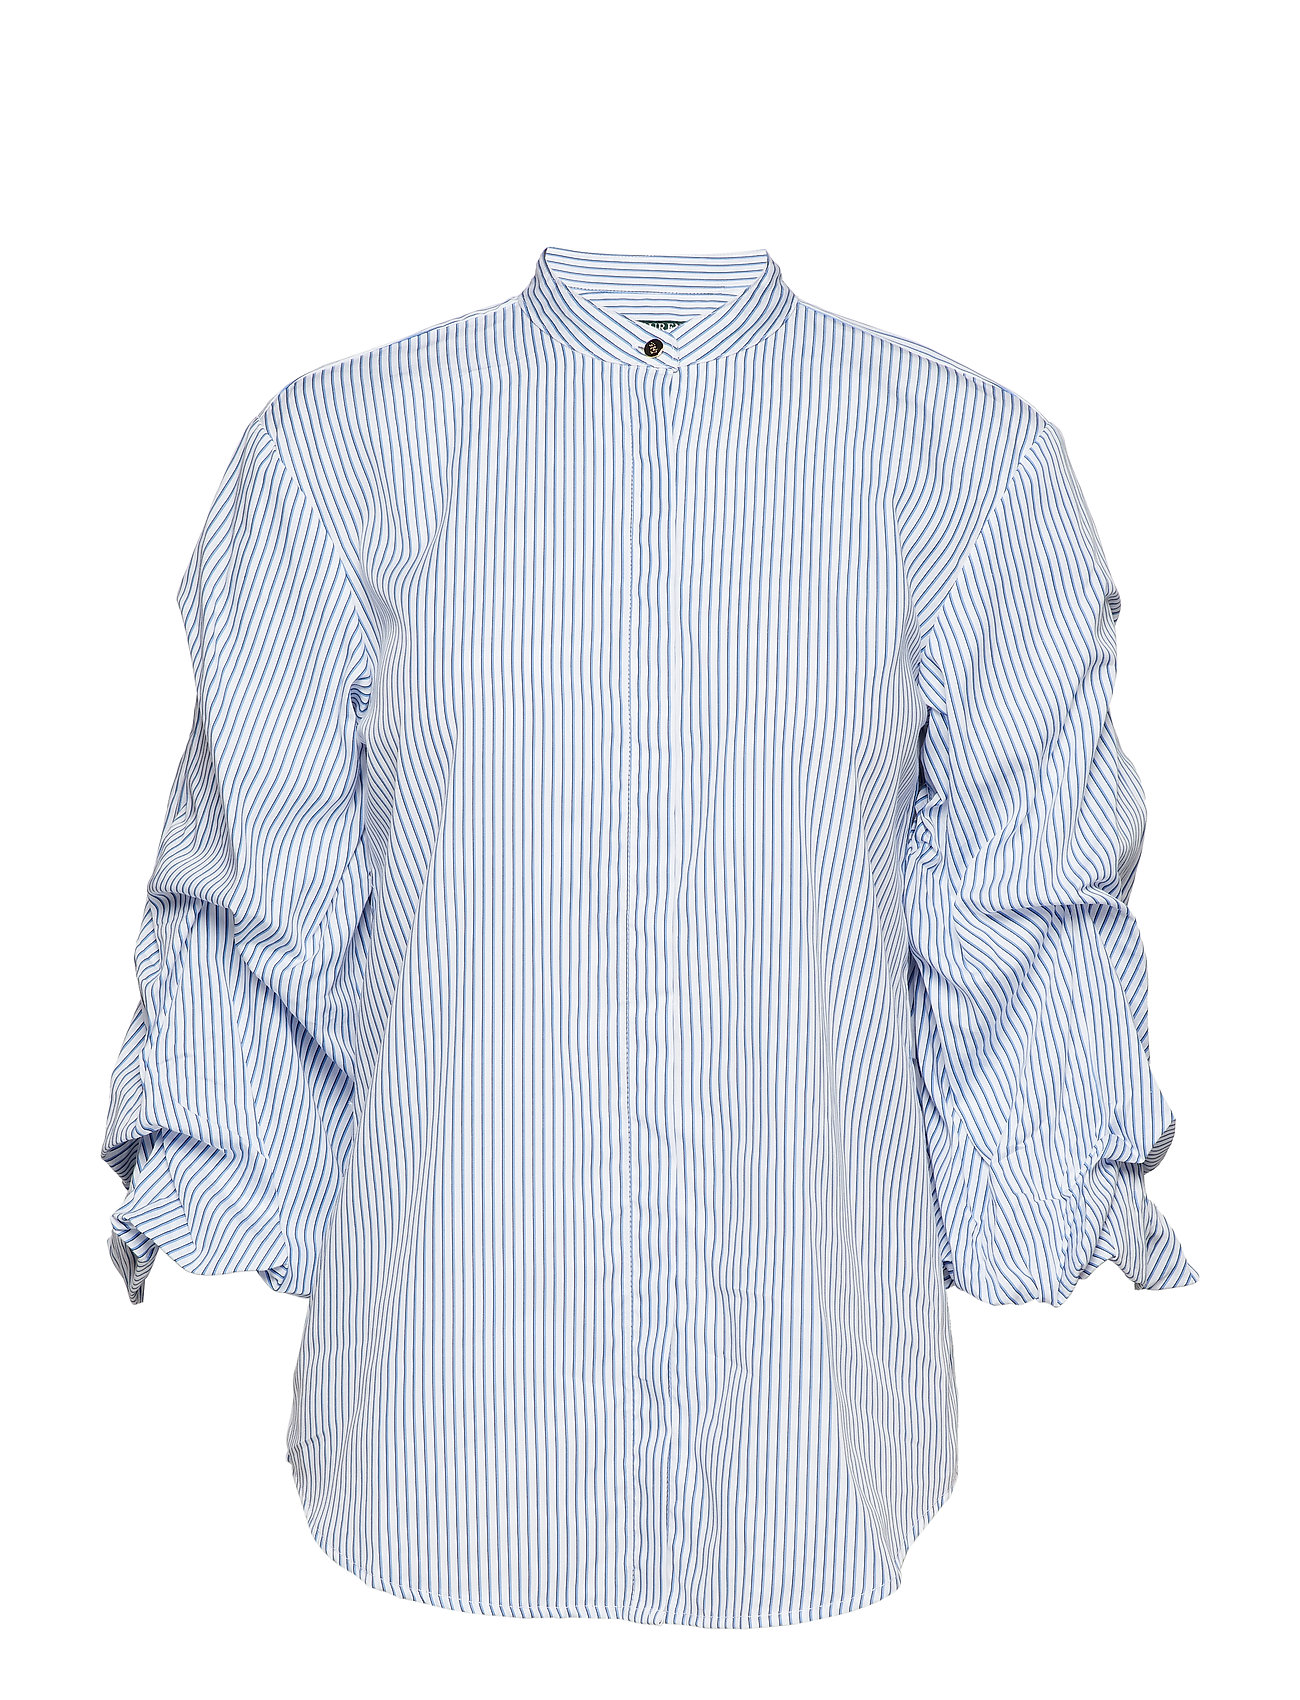 Lauren Ralph Lauren Cotton Puff-Sleeve Shirt